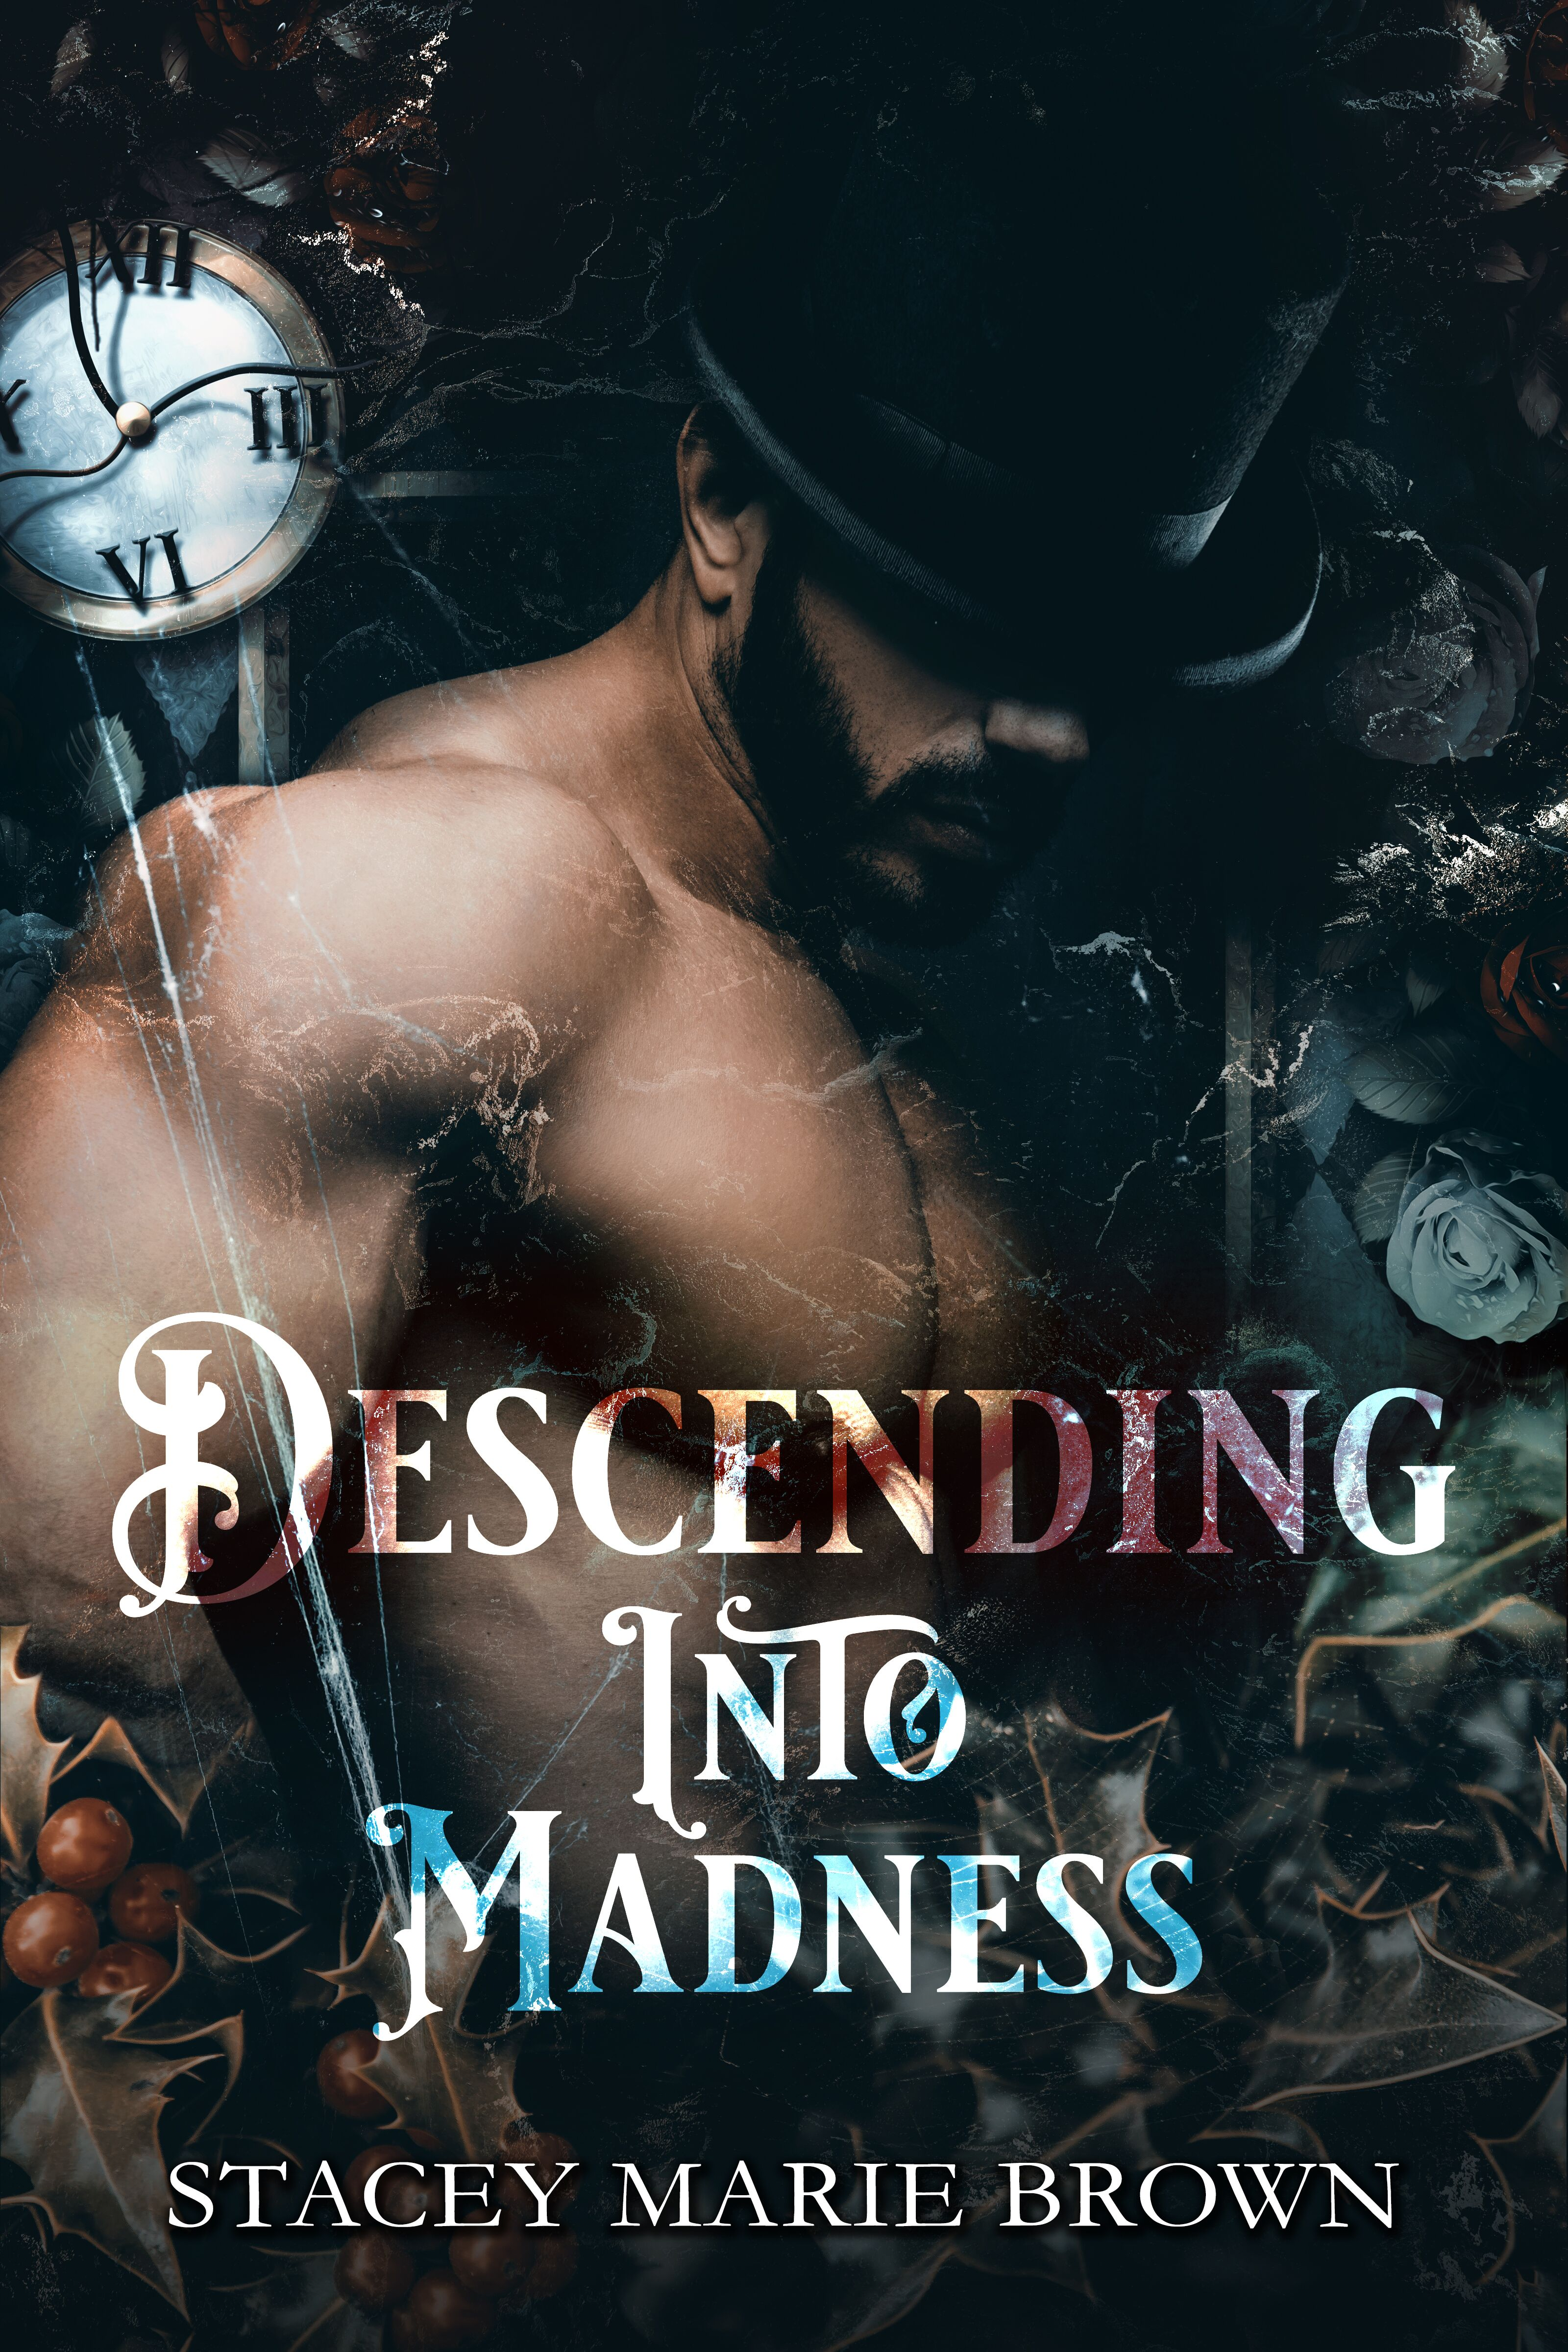 Stacey Marie Brown - Winterland Tale 1 - Descending Into Madness